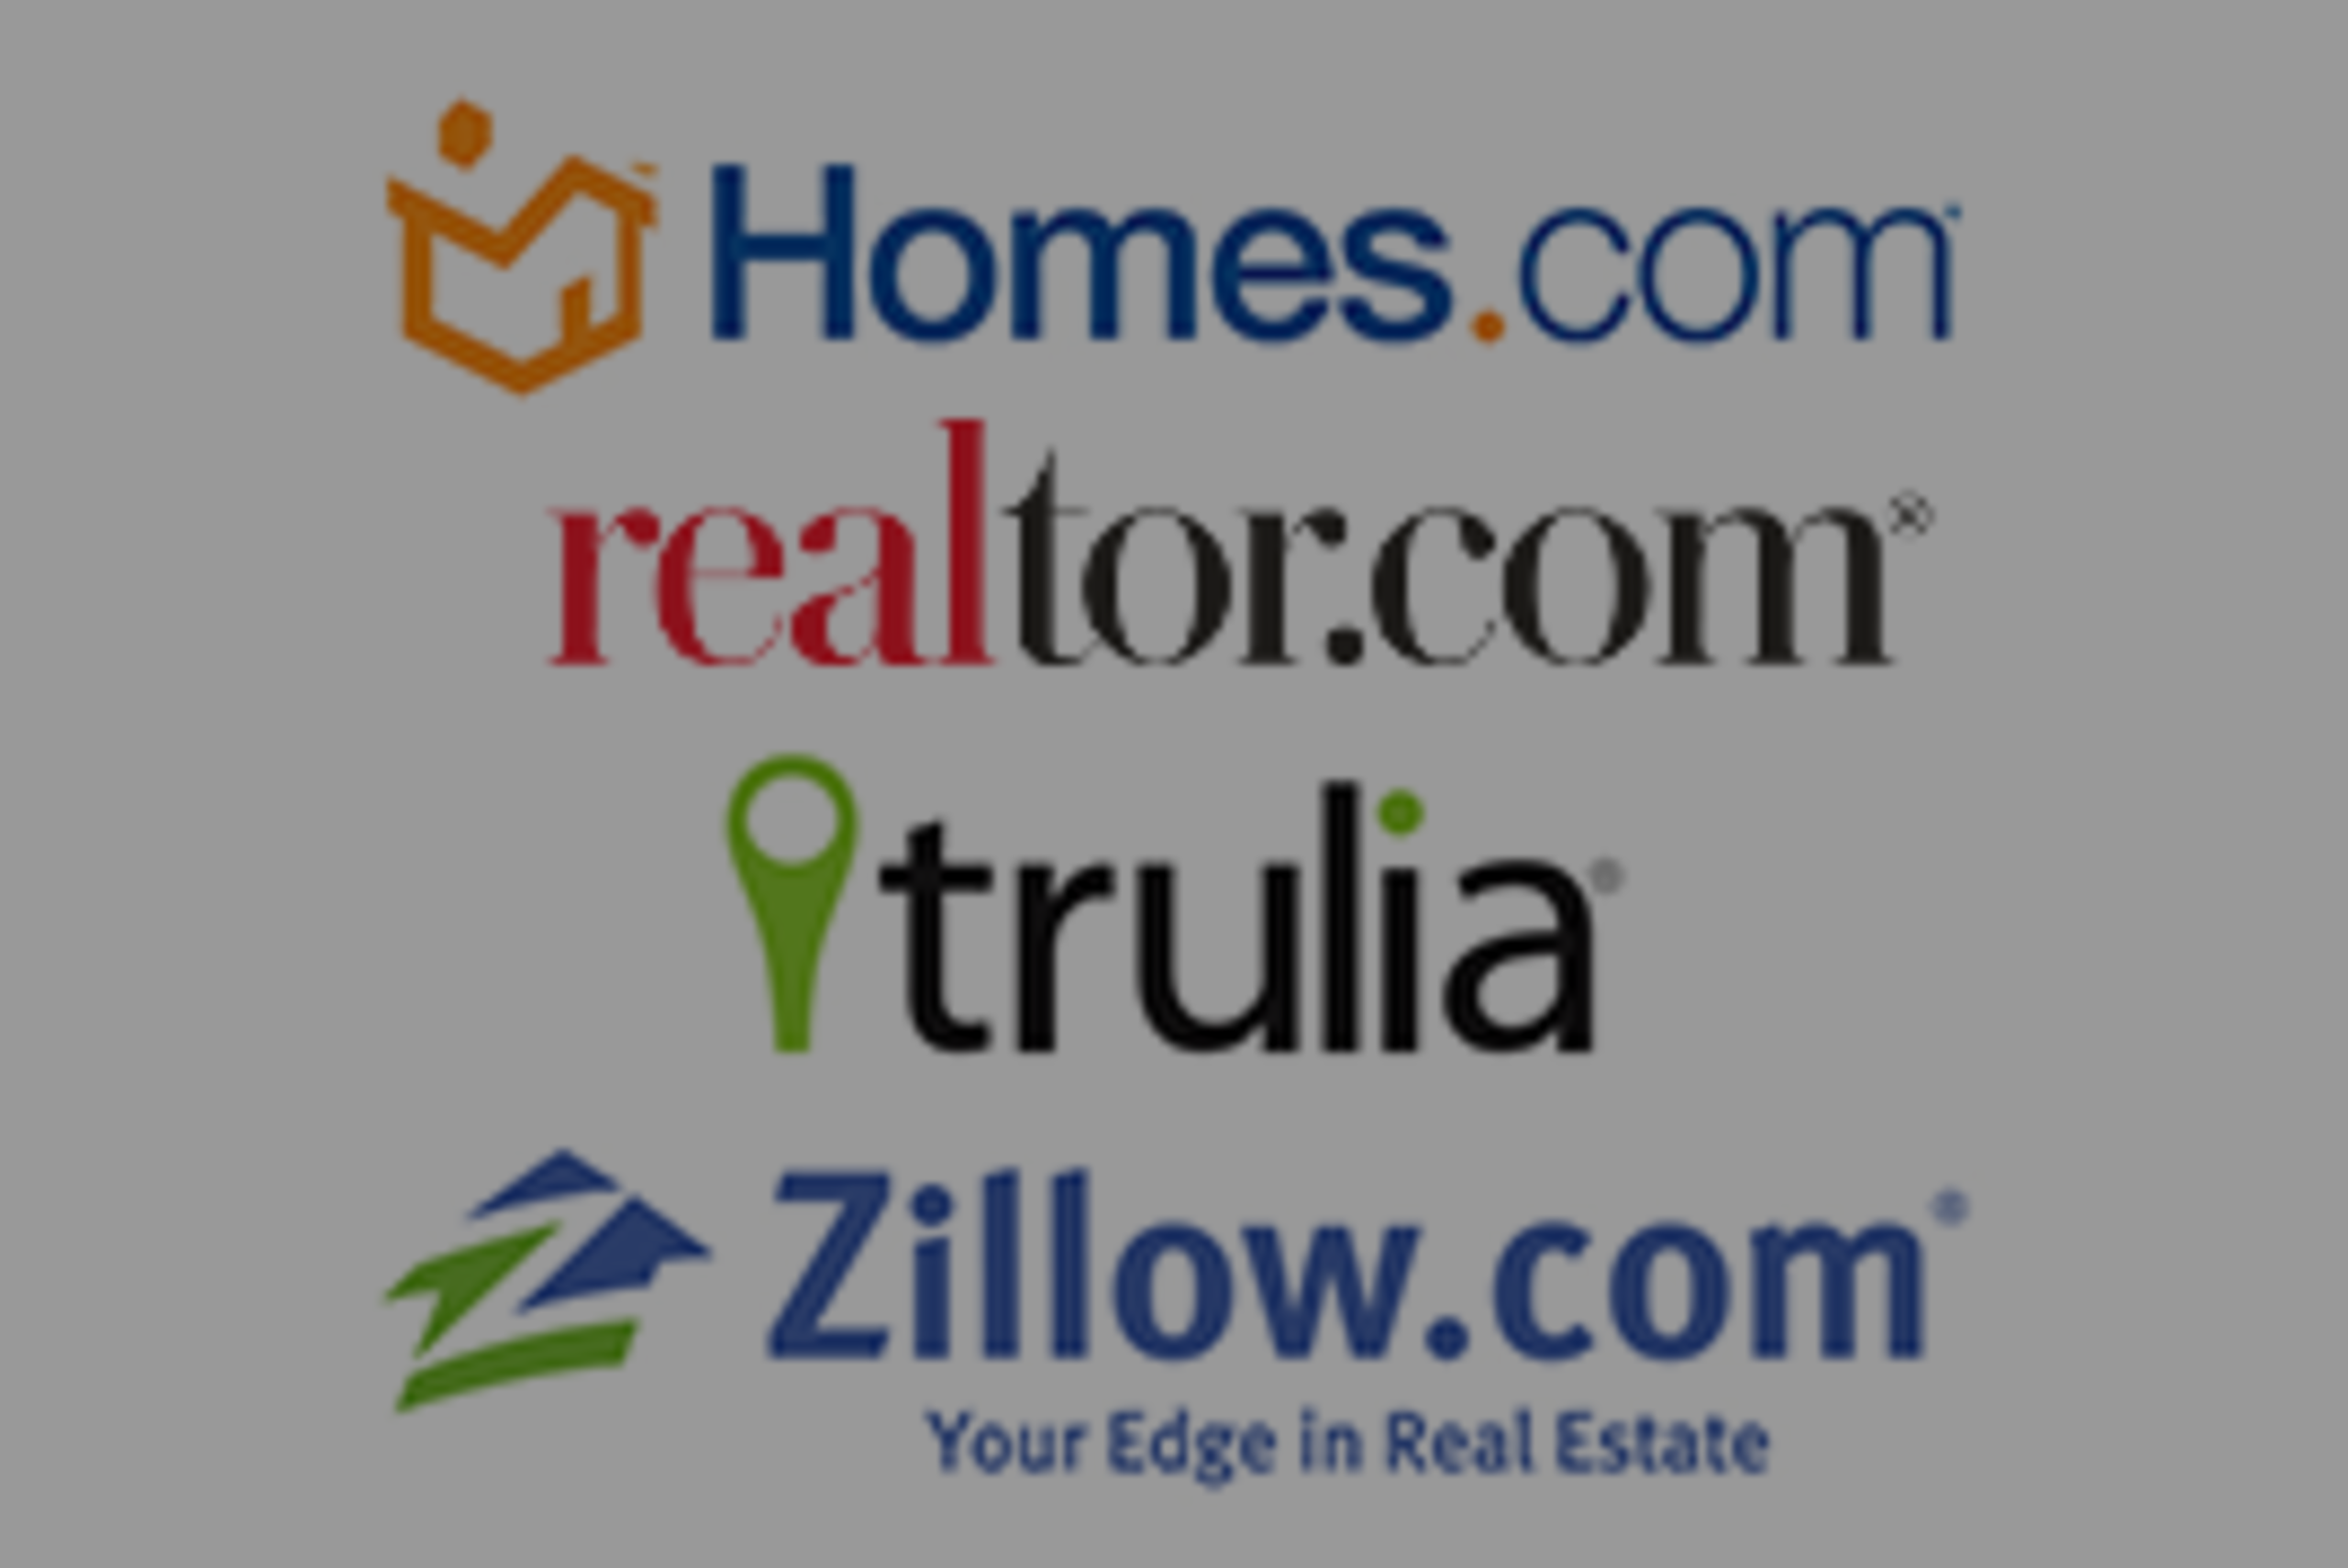 Real Opinion: Zillow, Realtor.com, Trulia